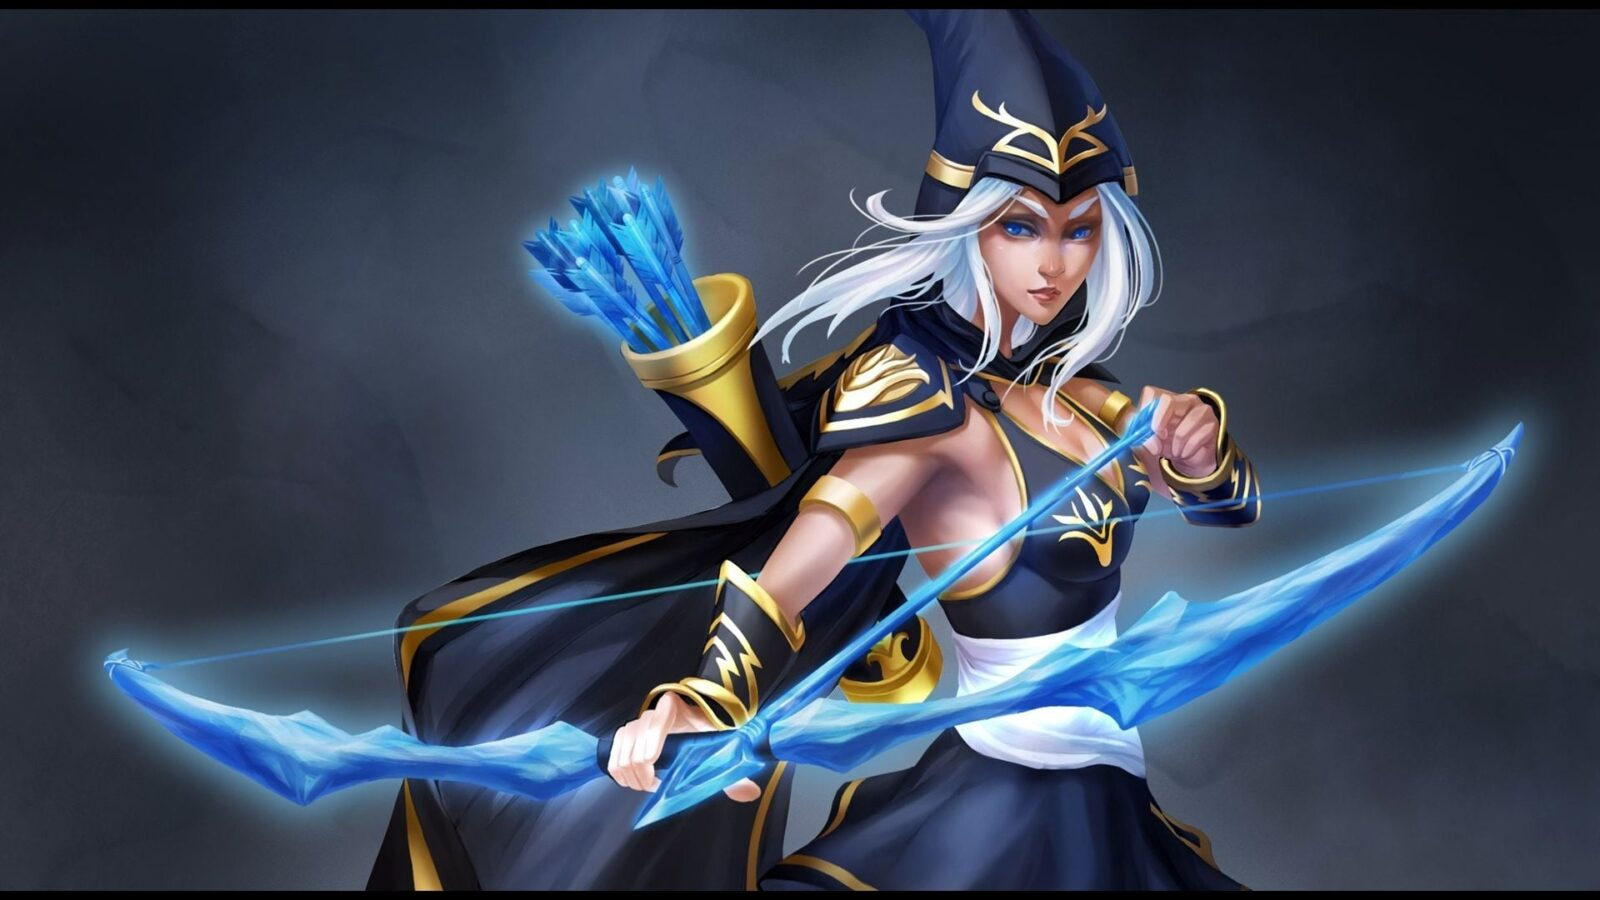 Abstract Wallpaper Hd 21 Ashe League Of Legends Wallpapers Hd Free Download